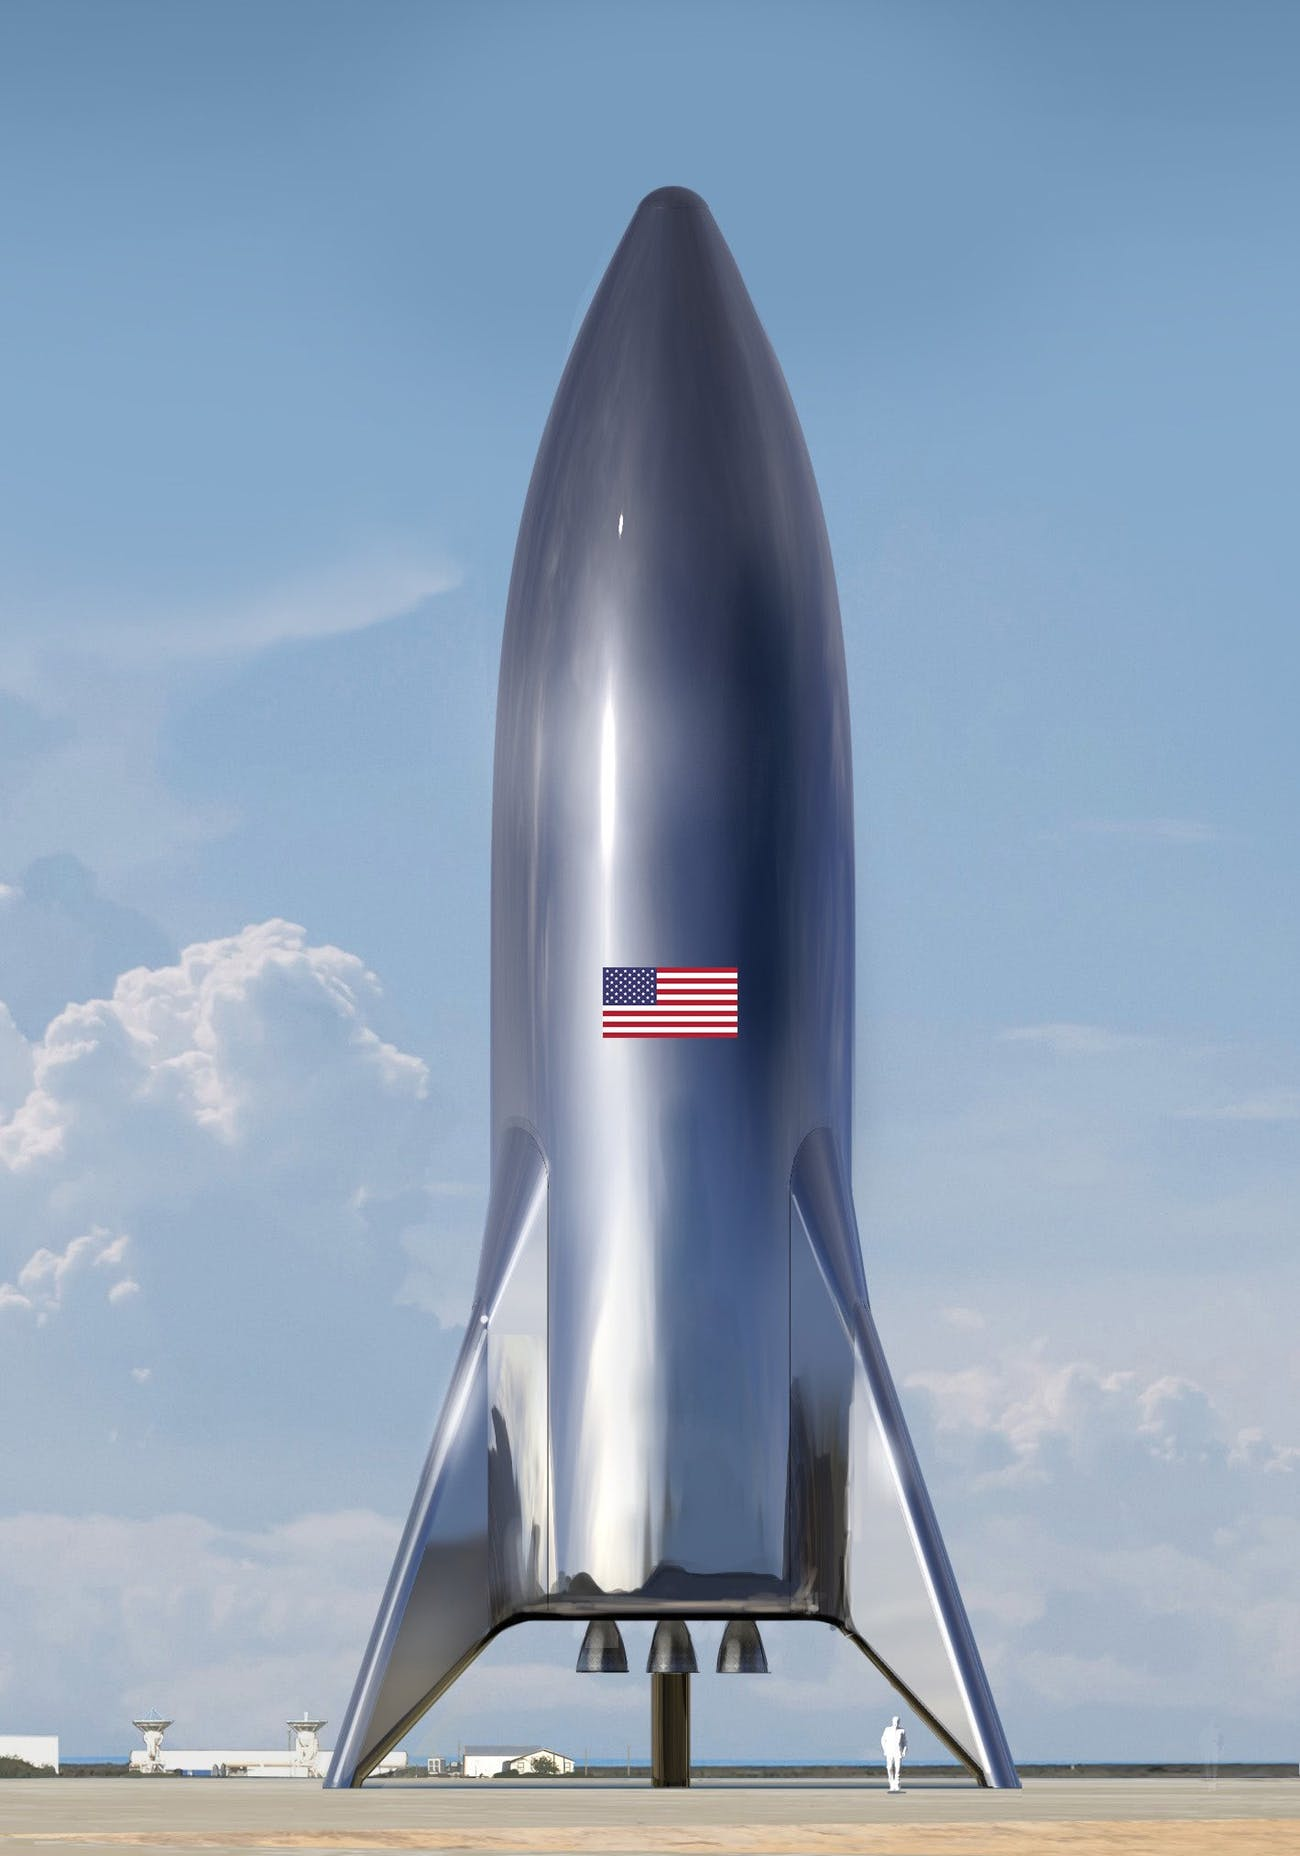 Spacex Starship Elon Musk Reveals The Incredible Sci Fi Design For